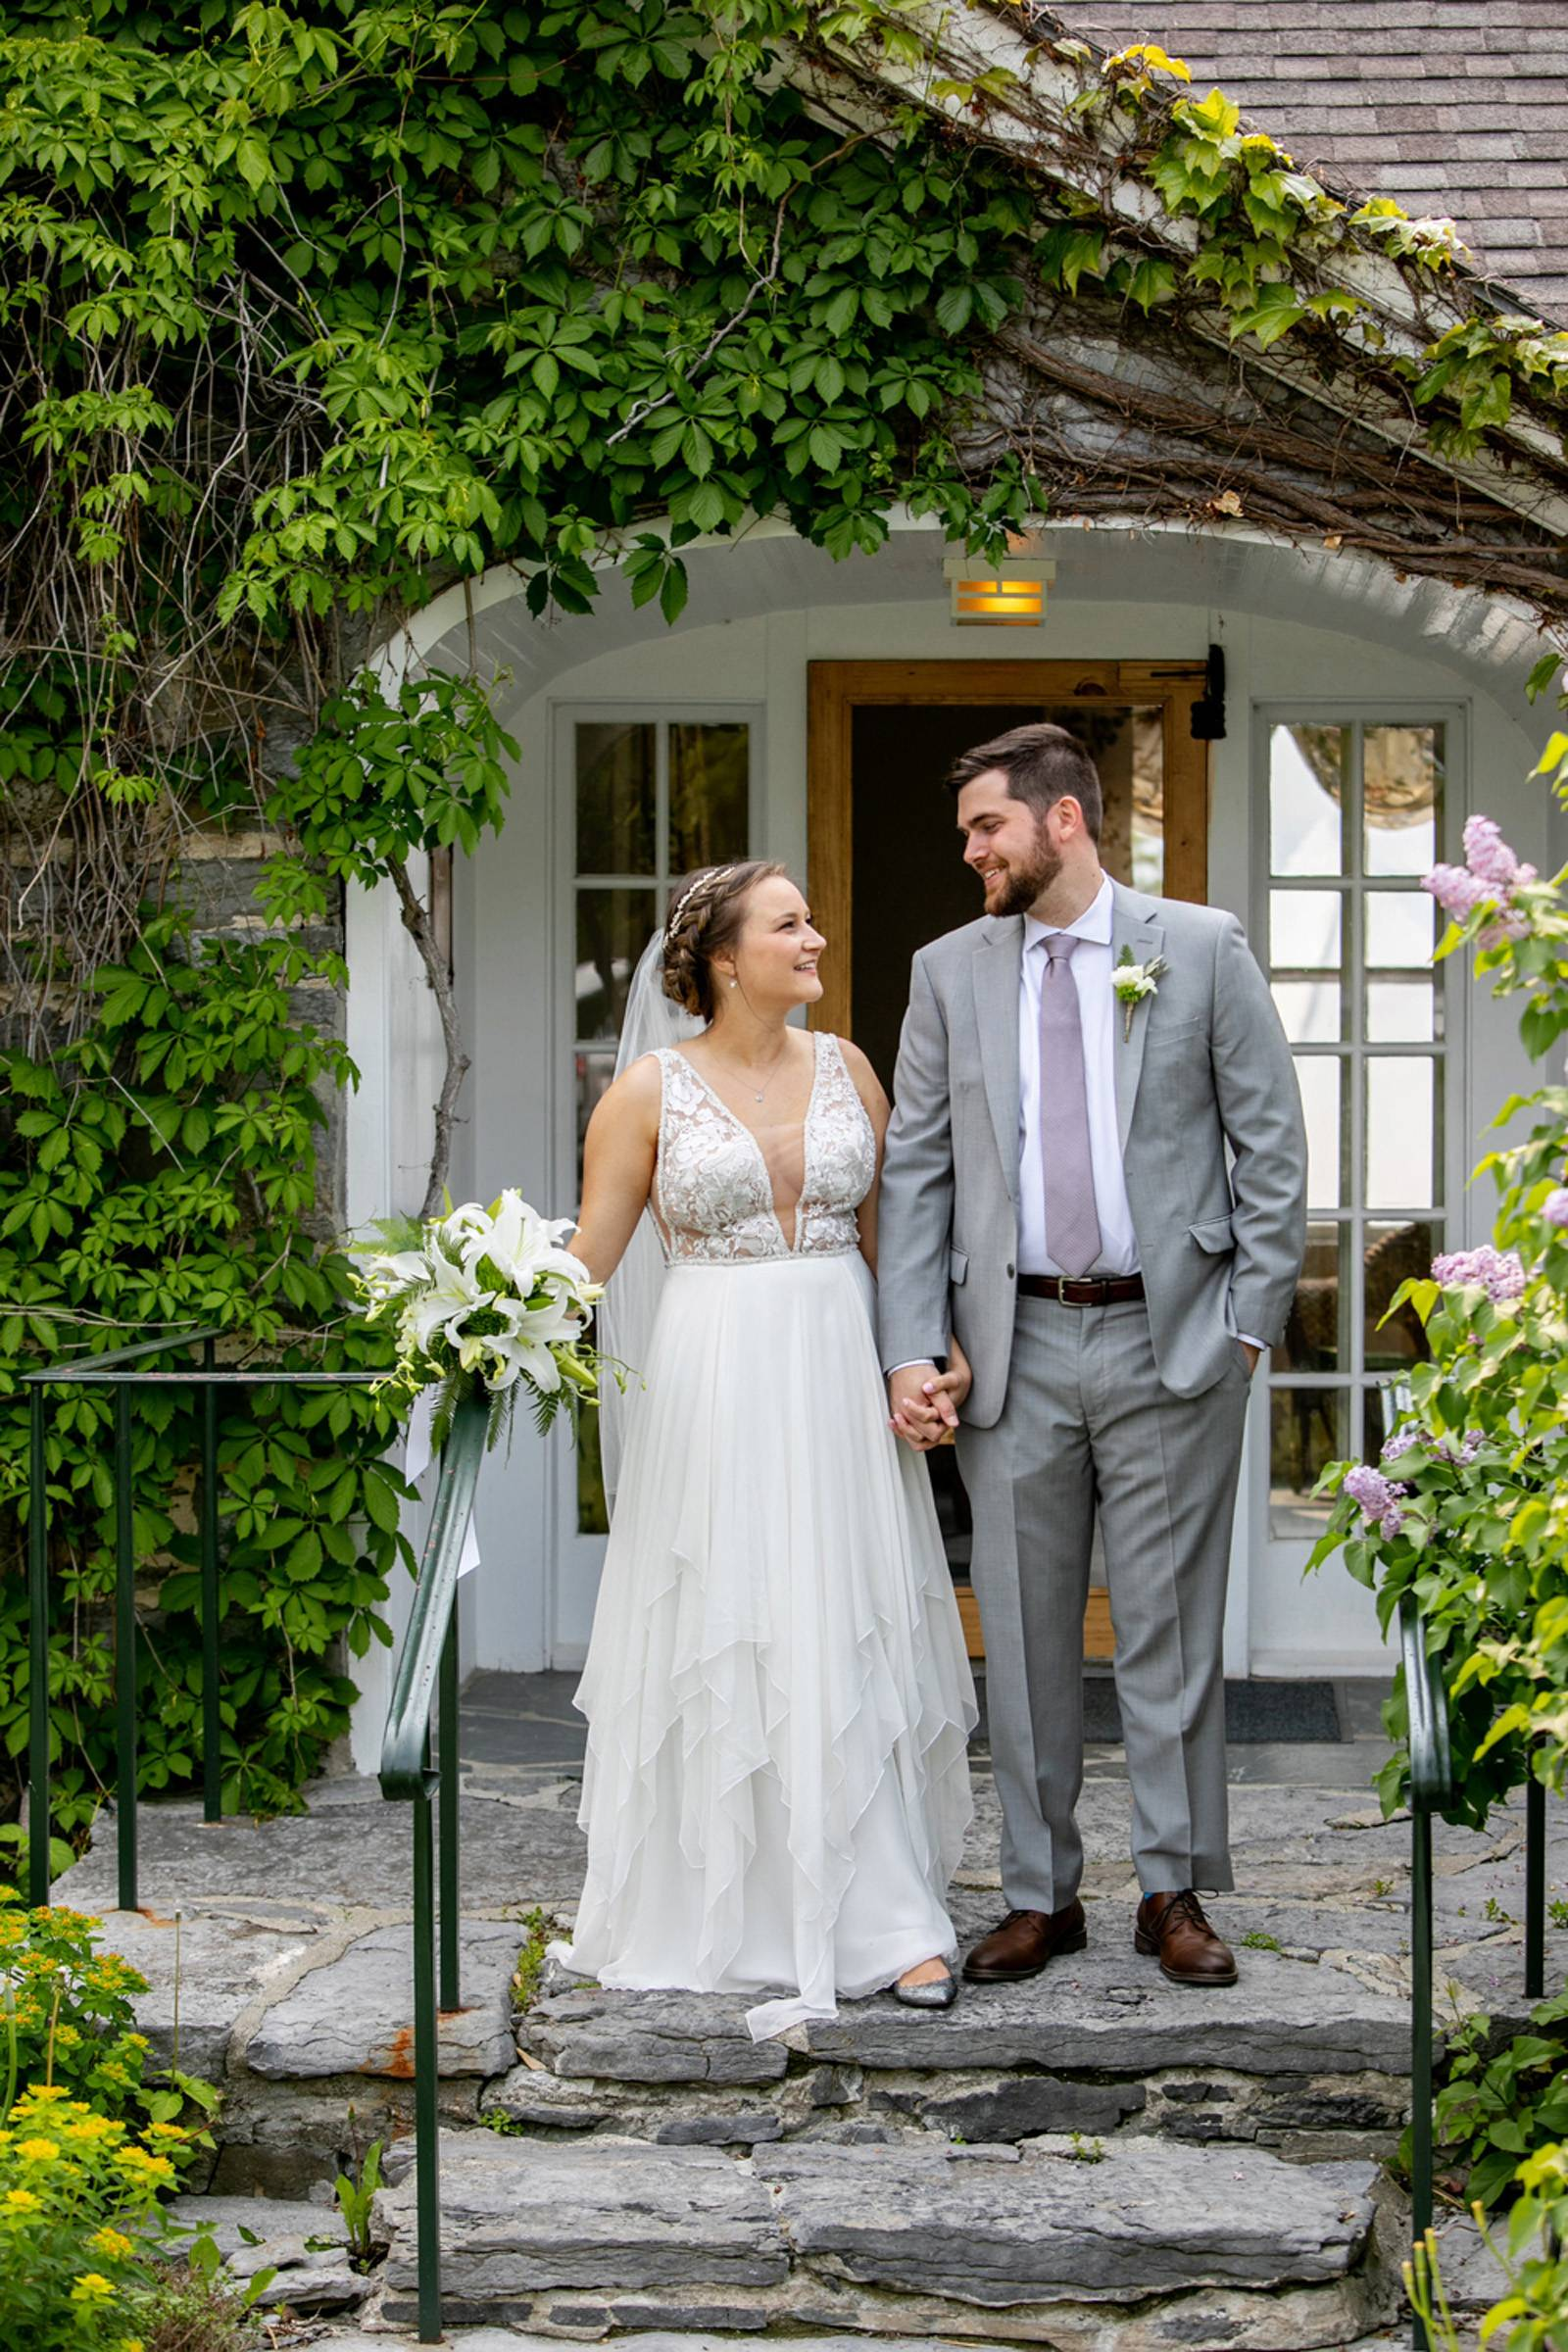 Bride, wearing lace top and chiffon bottom gown, smiling at groom